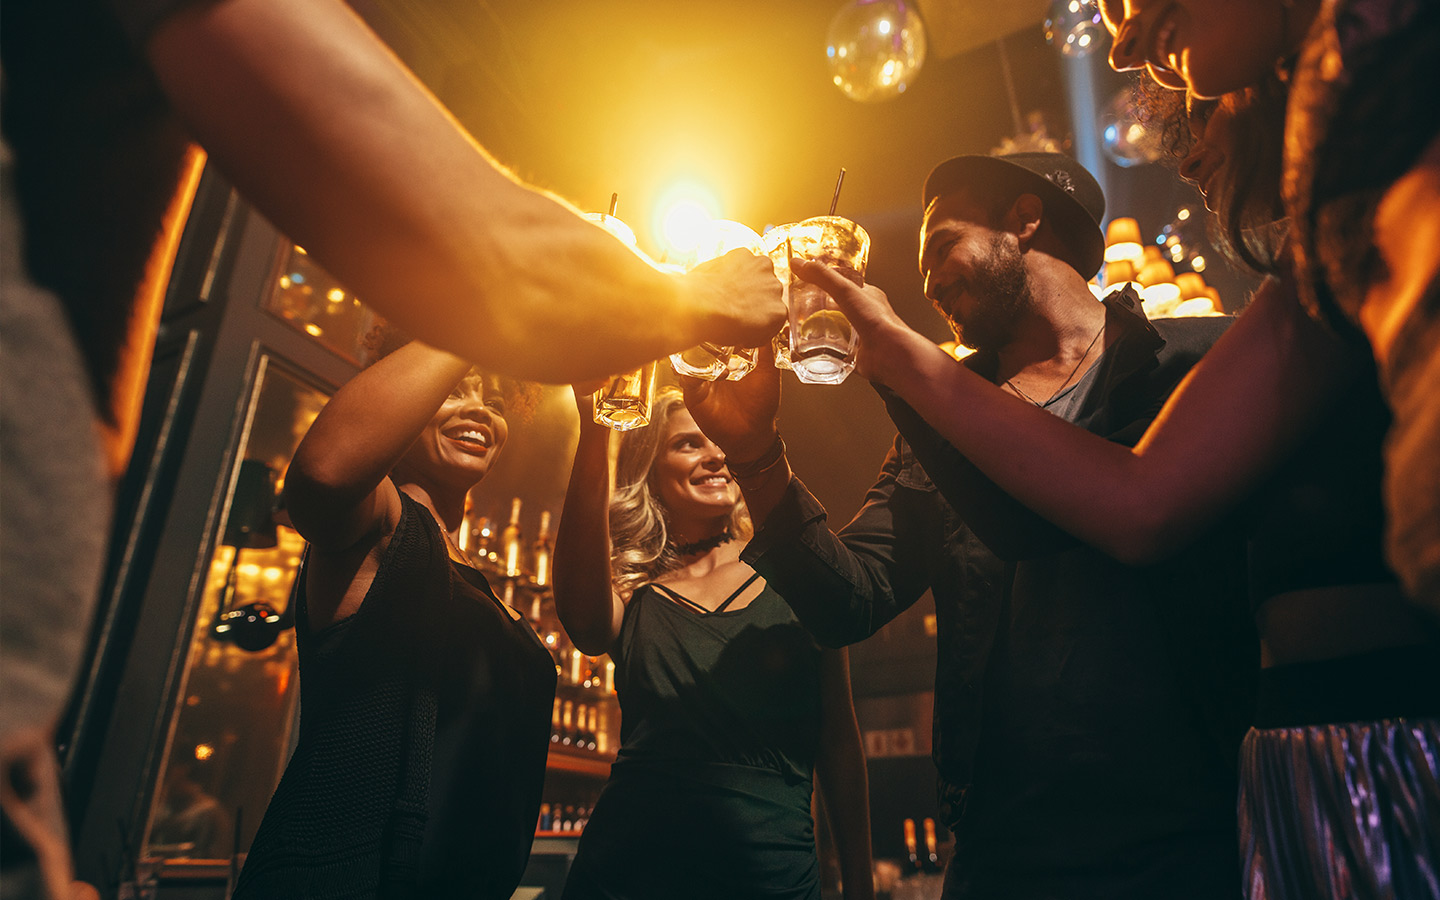 you need an alcohol licence in Dubai to drink